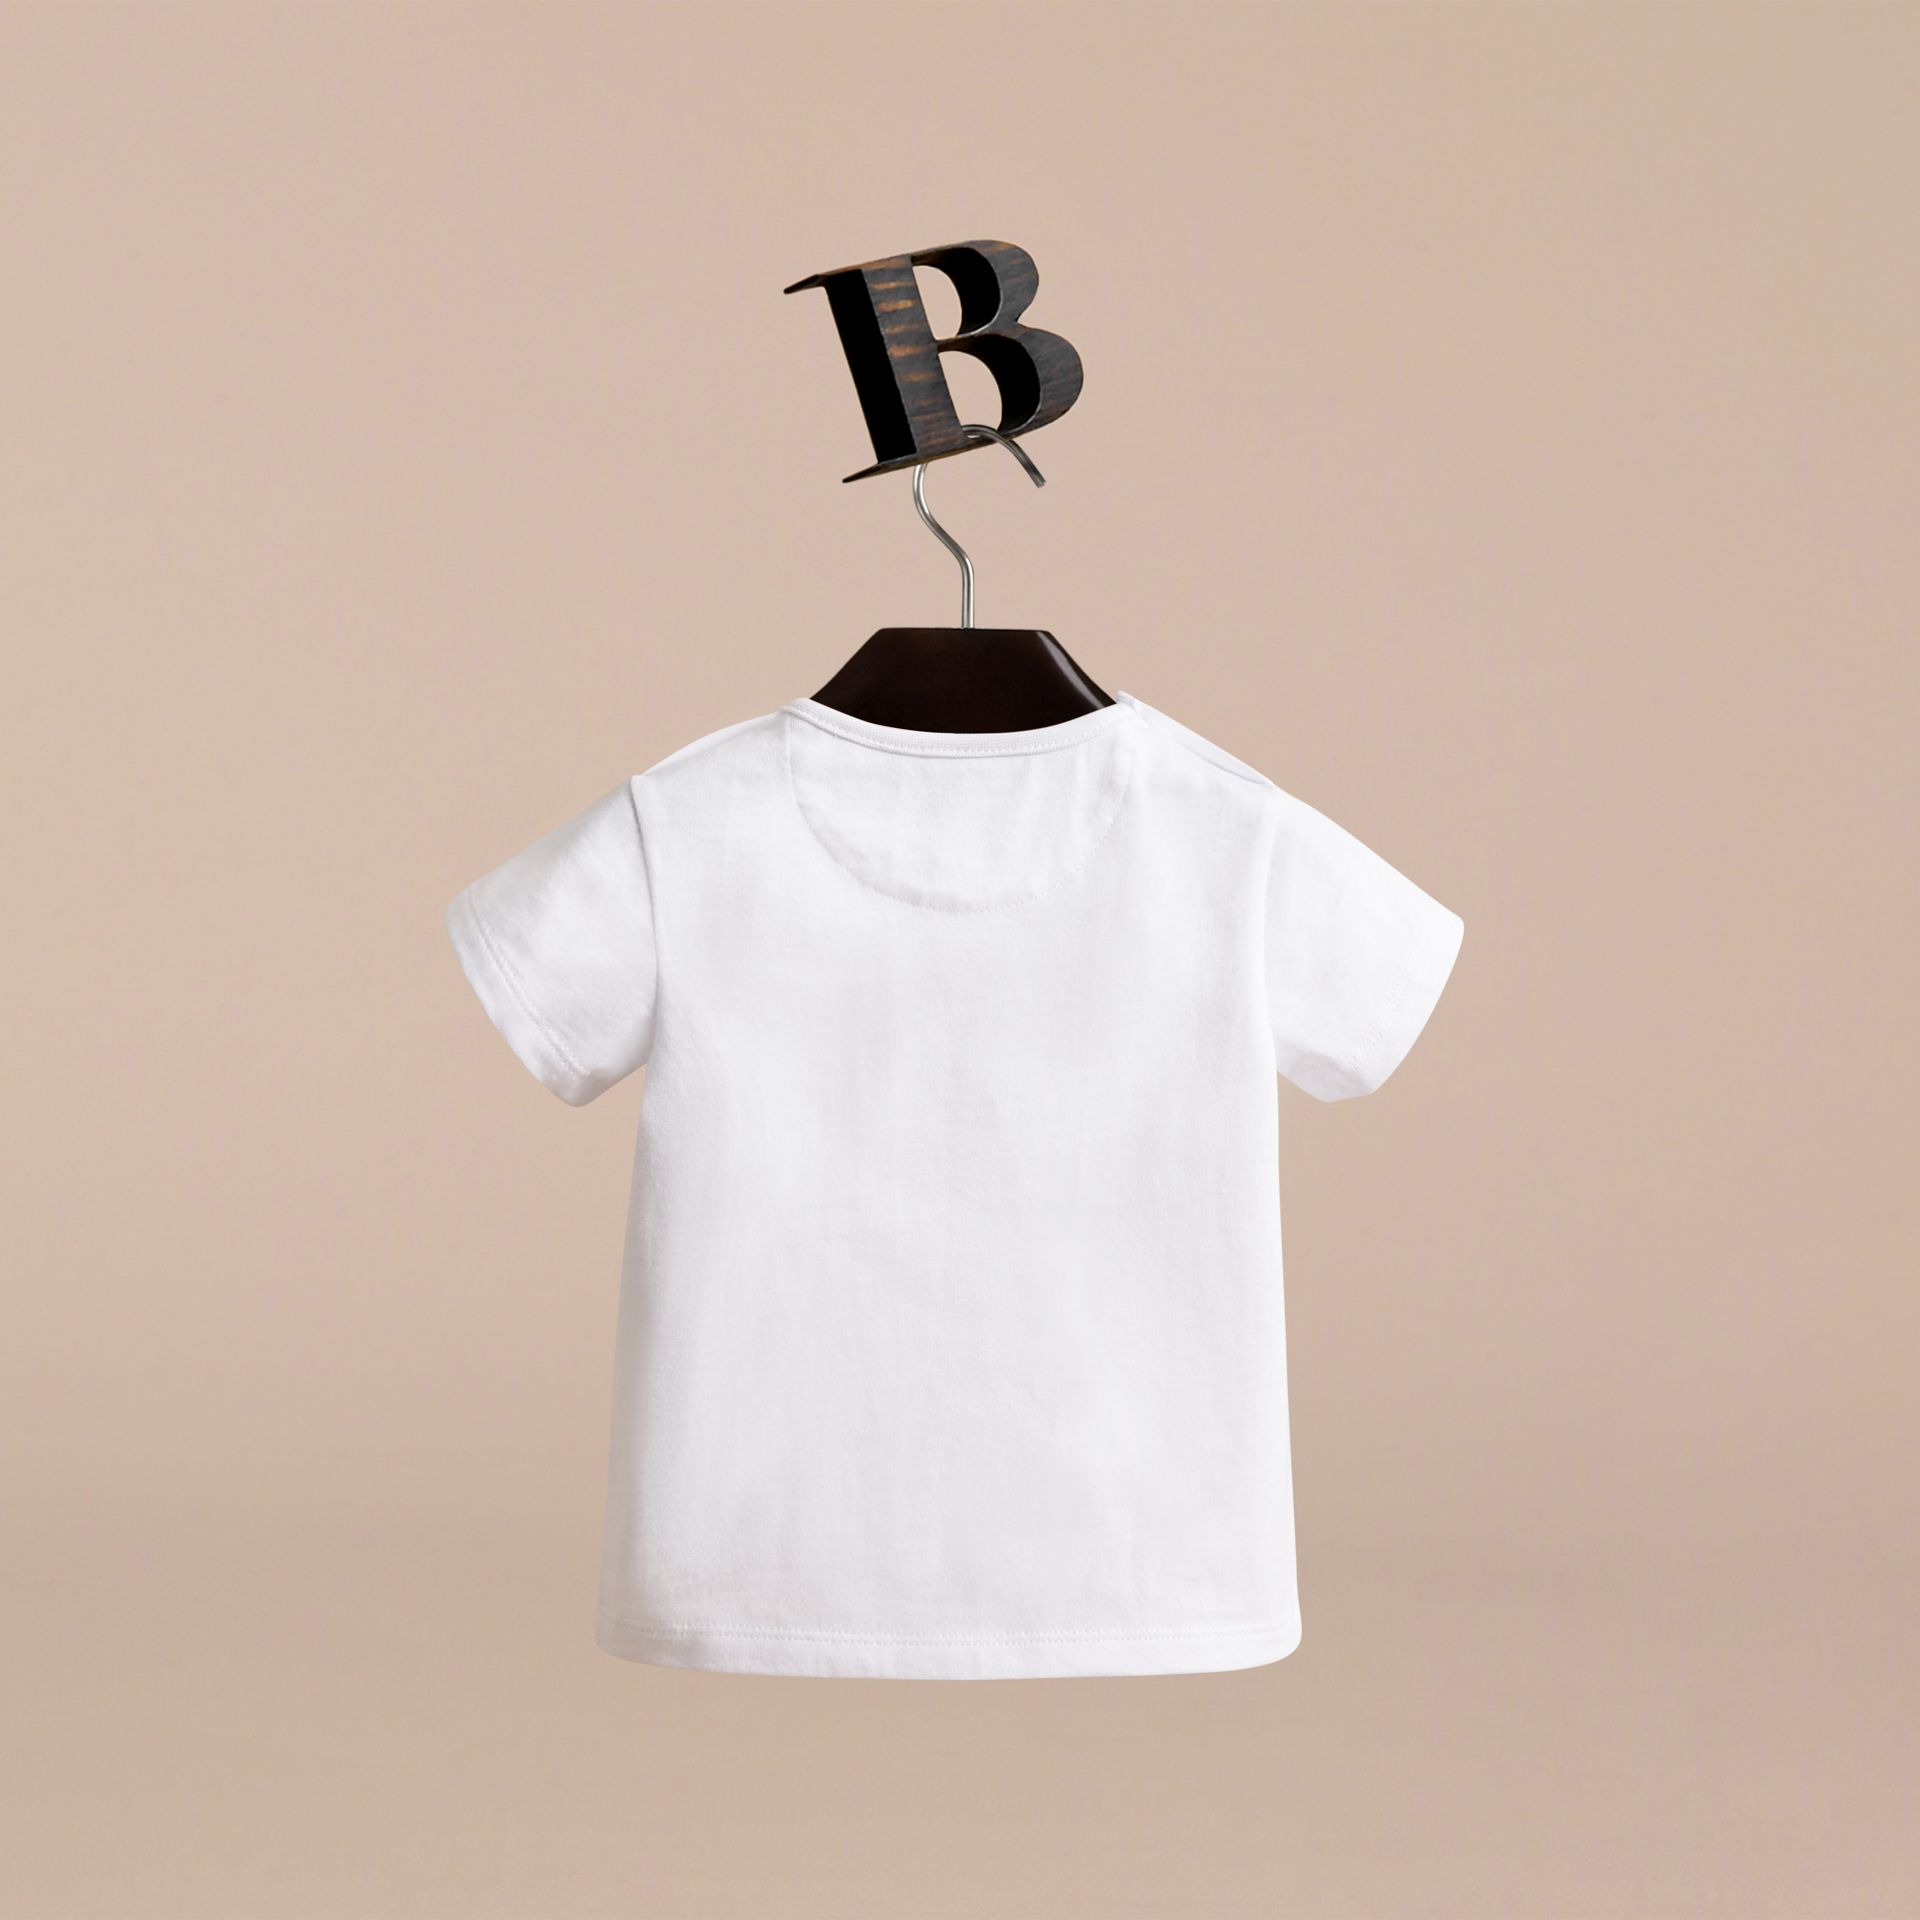 London Icons Print Cotton T-shirt | Burberry - gallery image 4